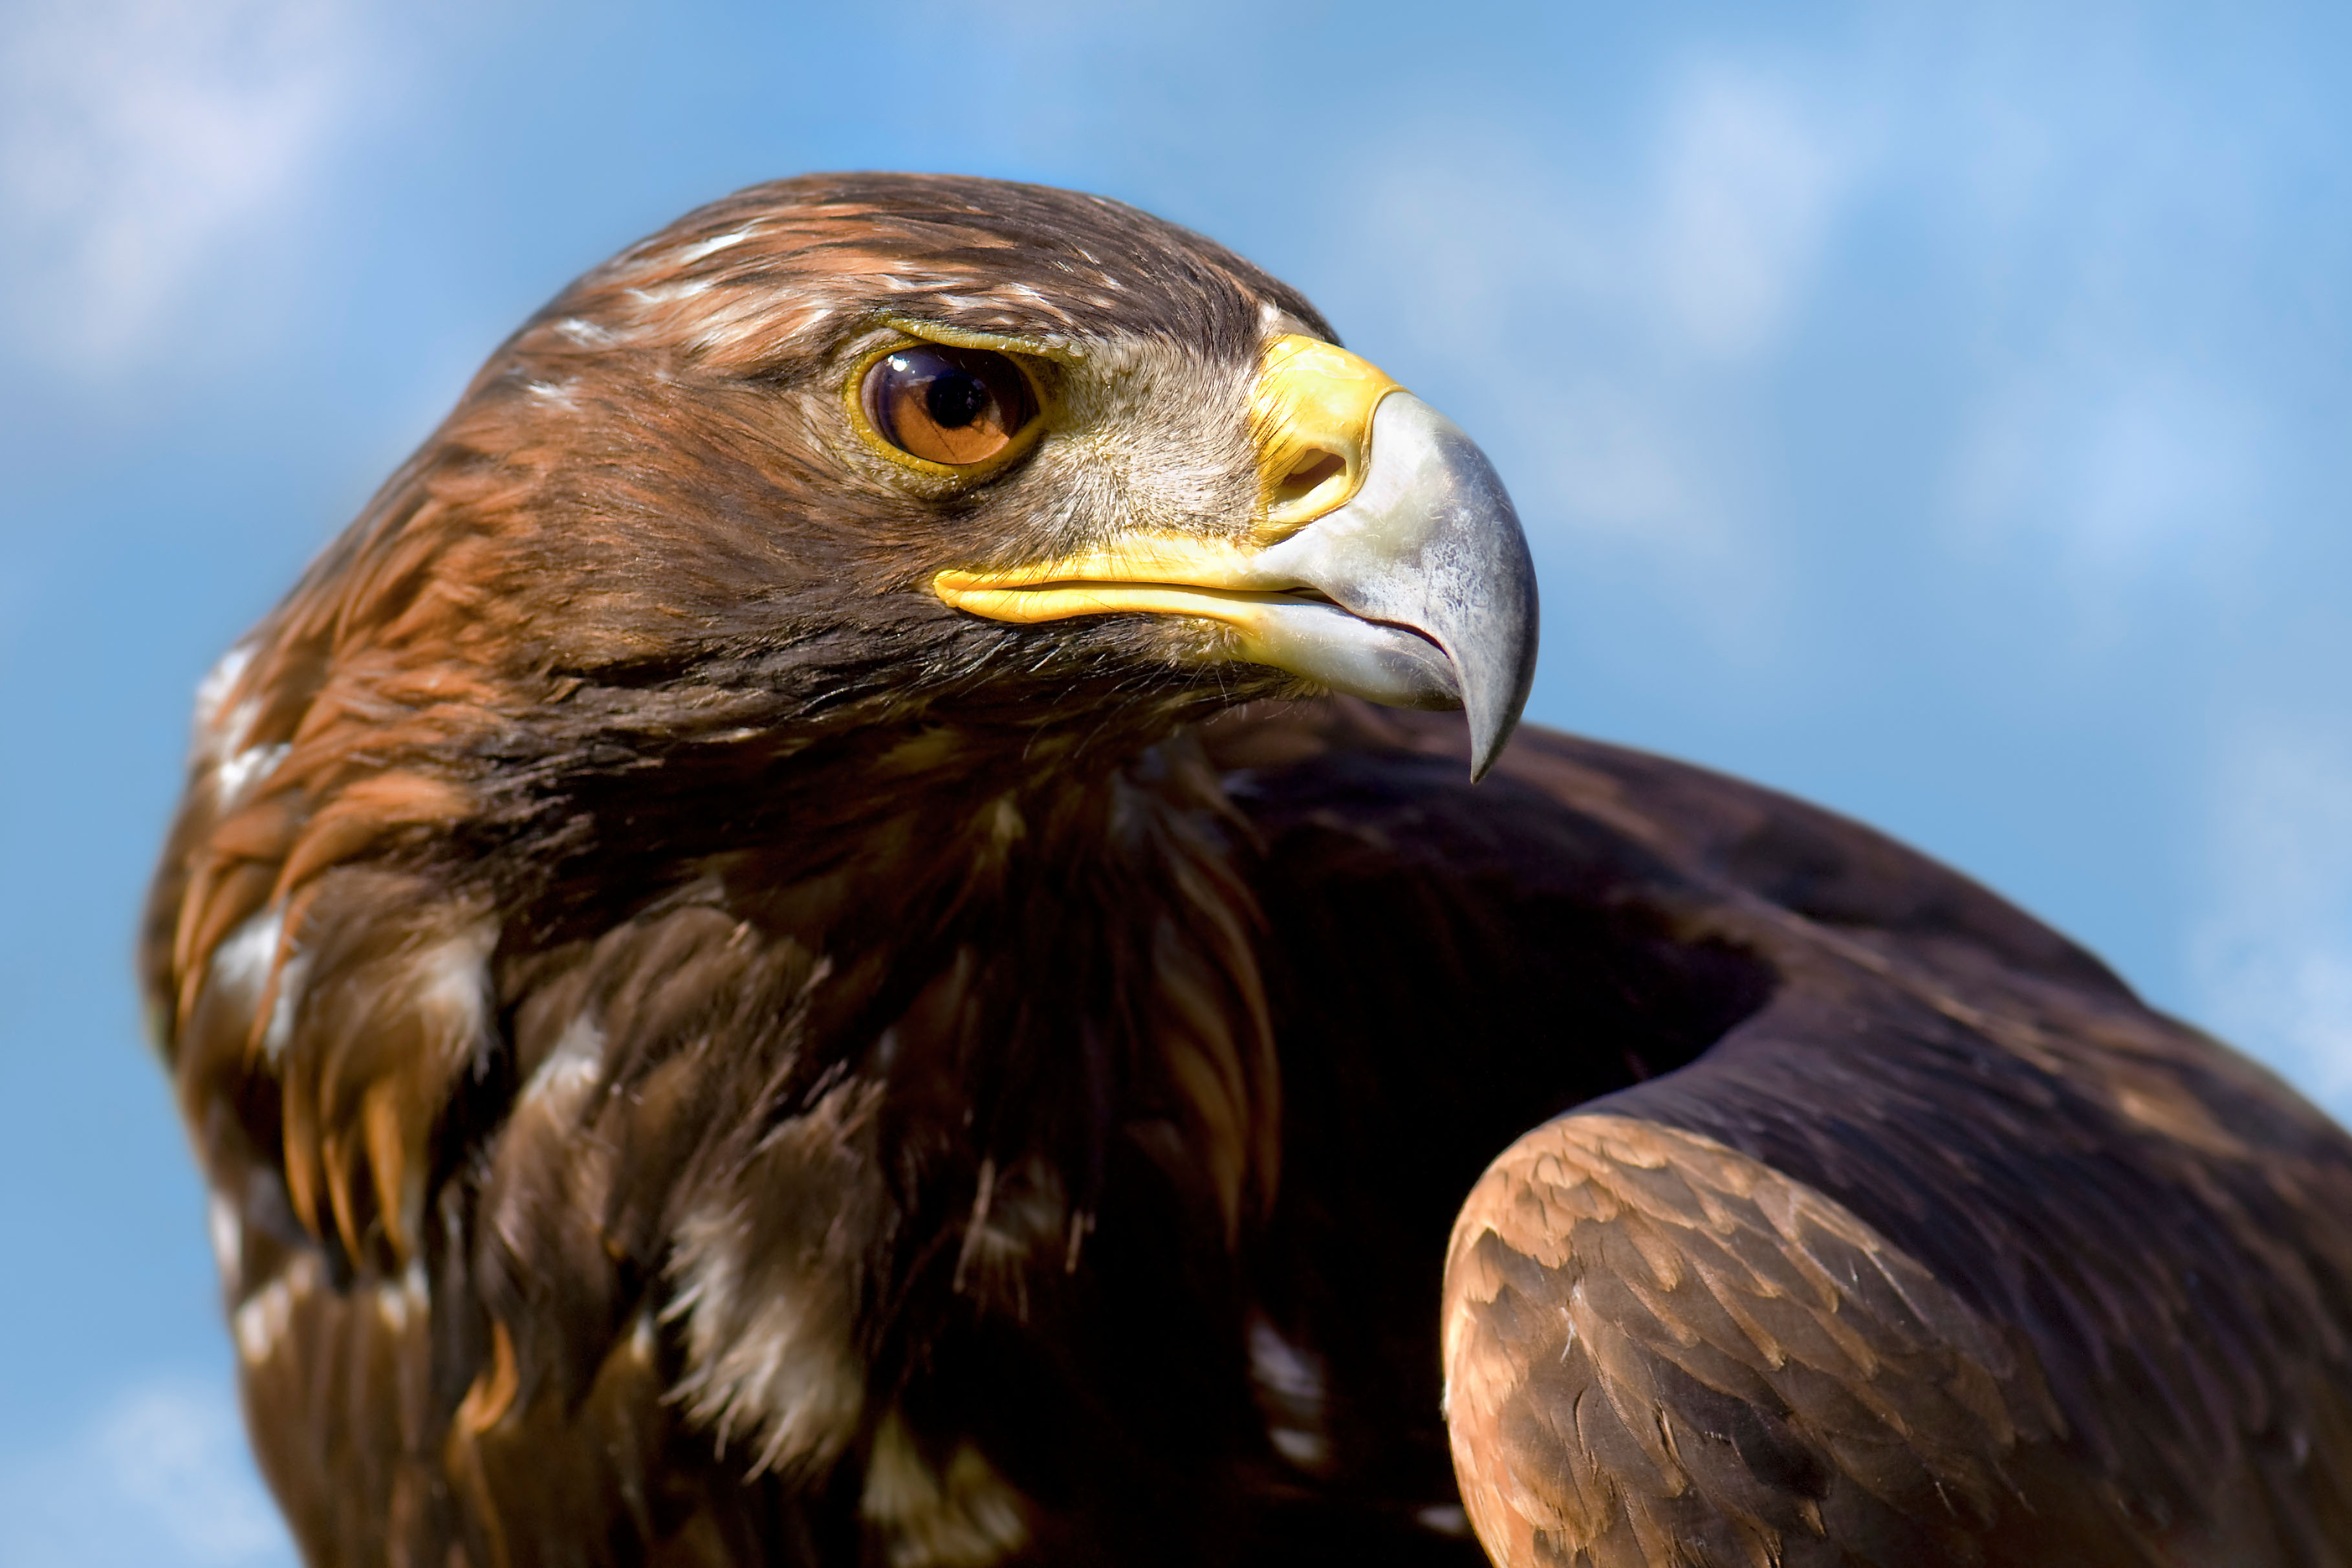 Leg Press For Sale >> A golden eagle has been spotted high above Deeside with its leg caught in a trap - Country Life